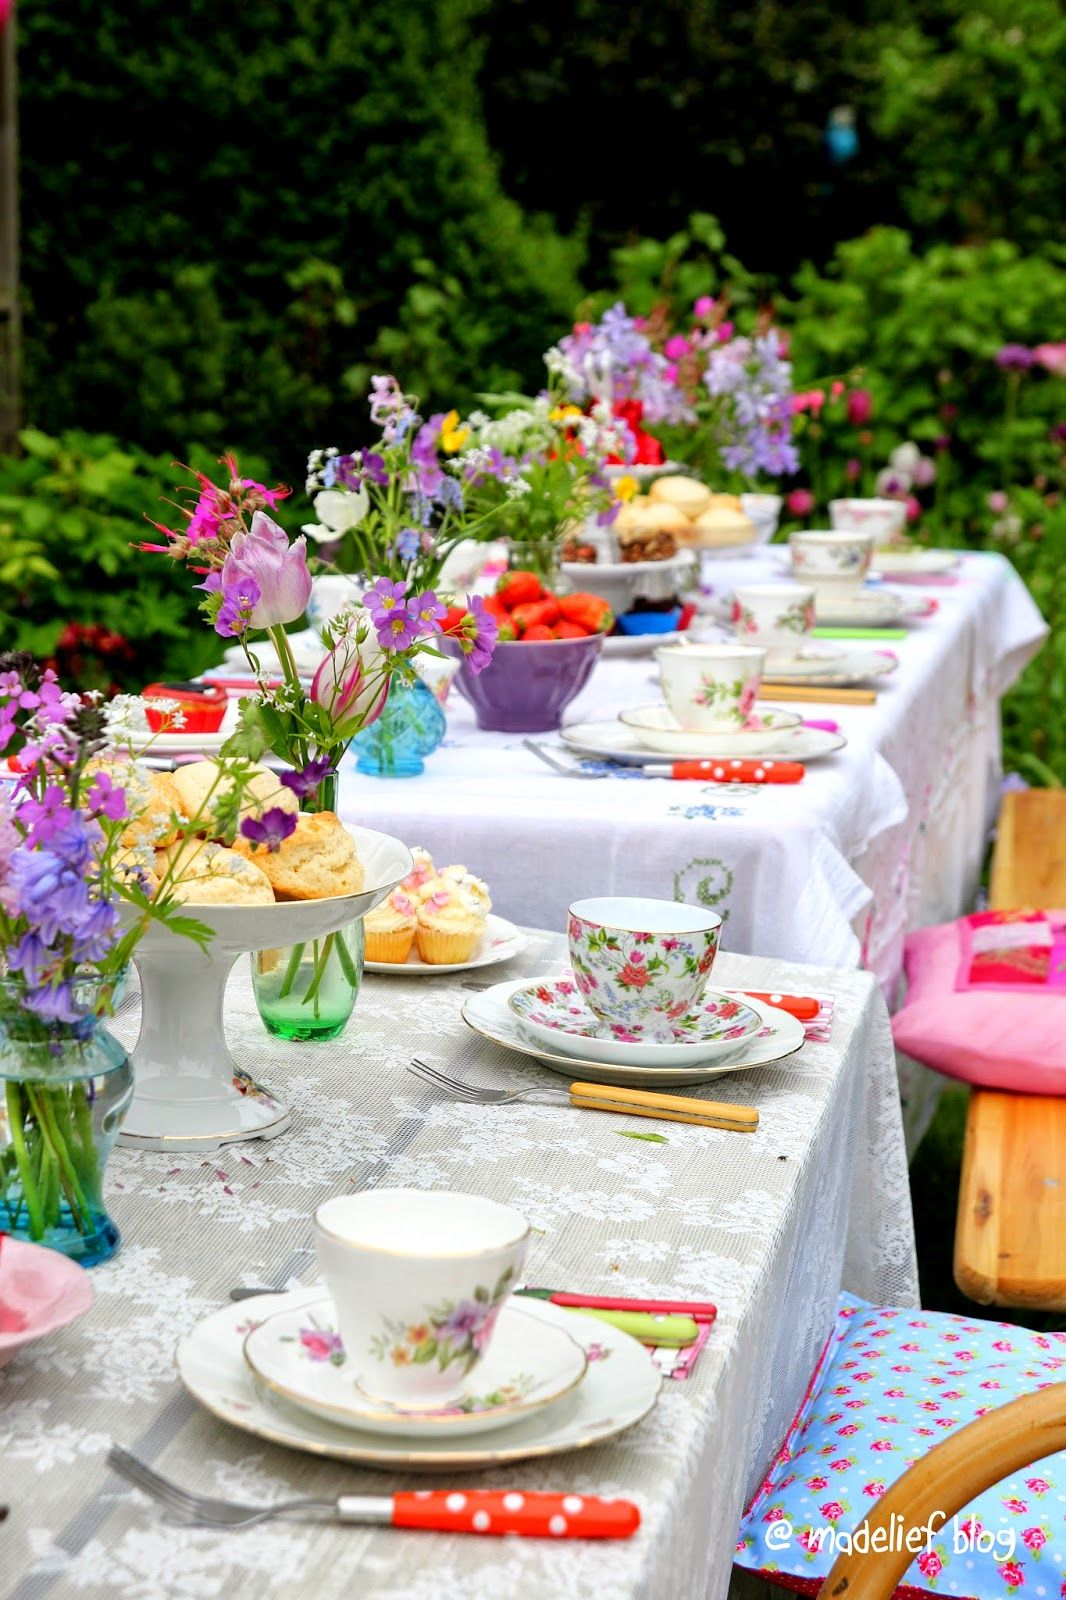 Madelief, I would love to be invited to this lunch. It is so ...